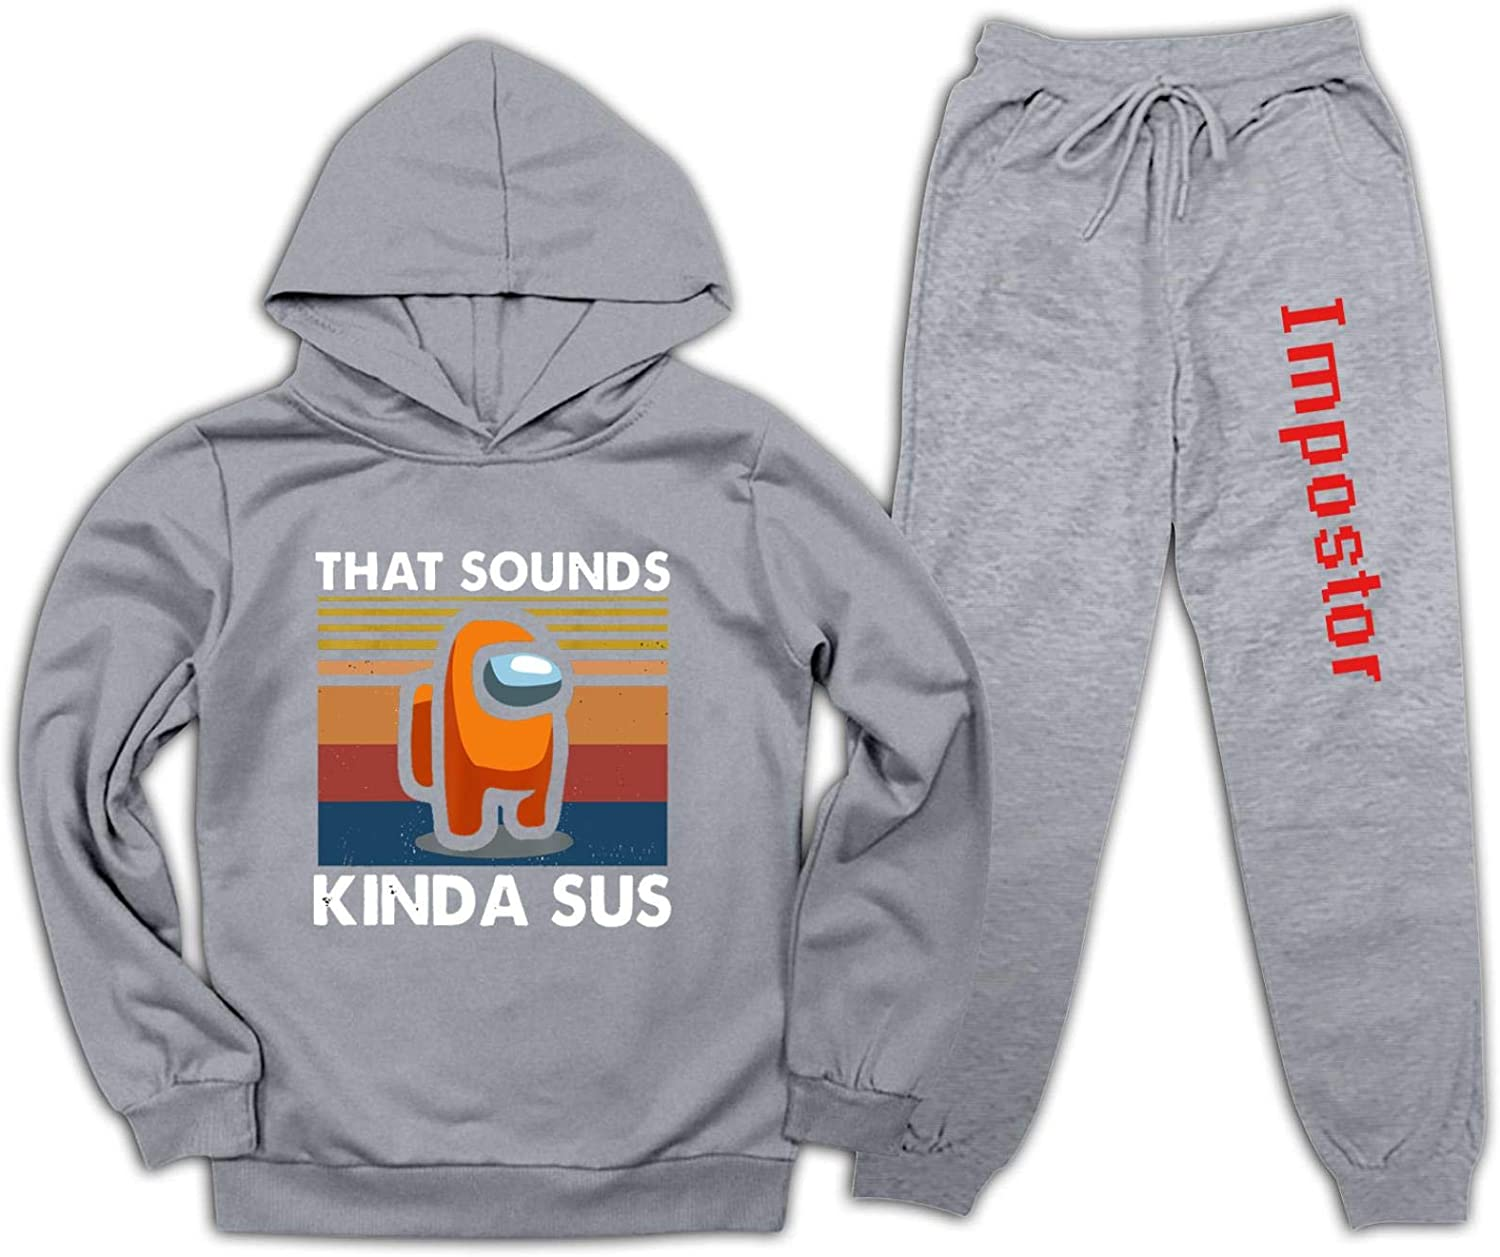 NJLLOS Kids Among Us Kinda Sus Pullover Hoodie and Sweatpants Set for Boys Girls 2 Piece Sweatshirt Set